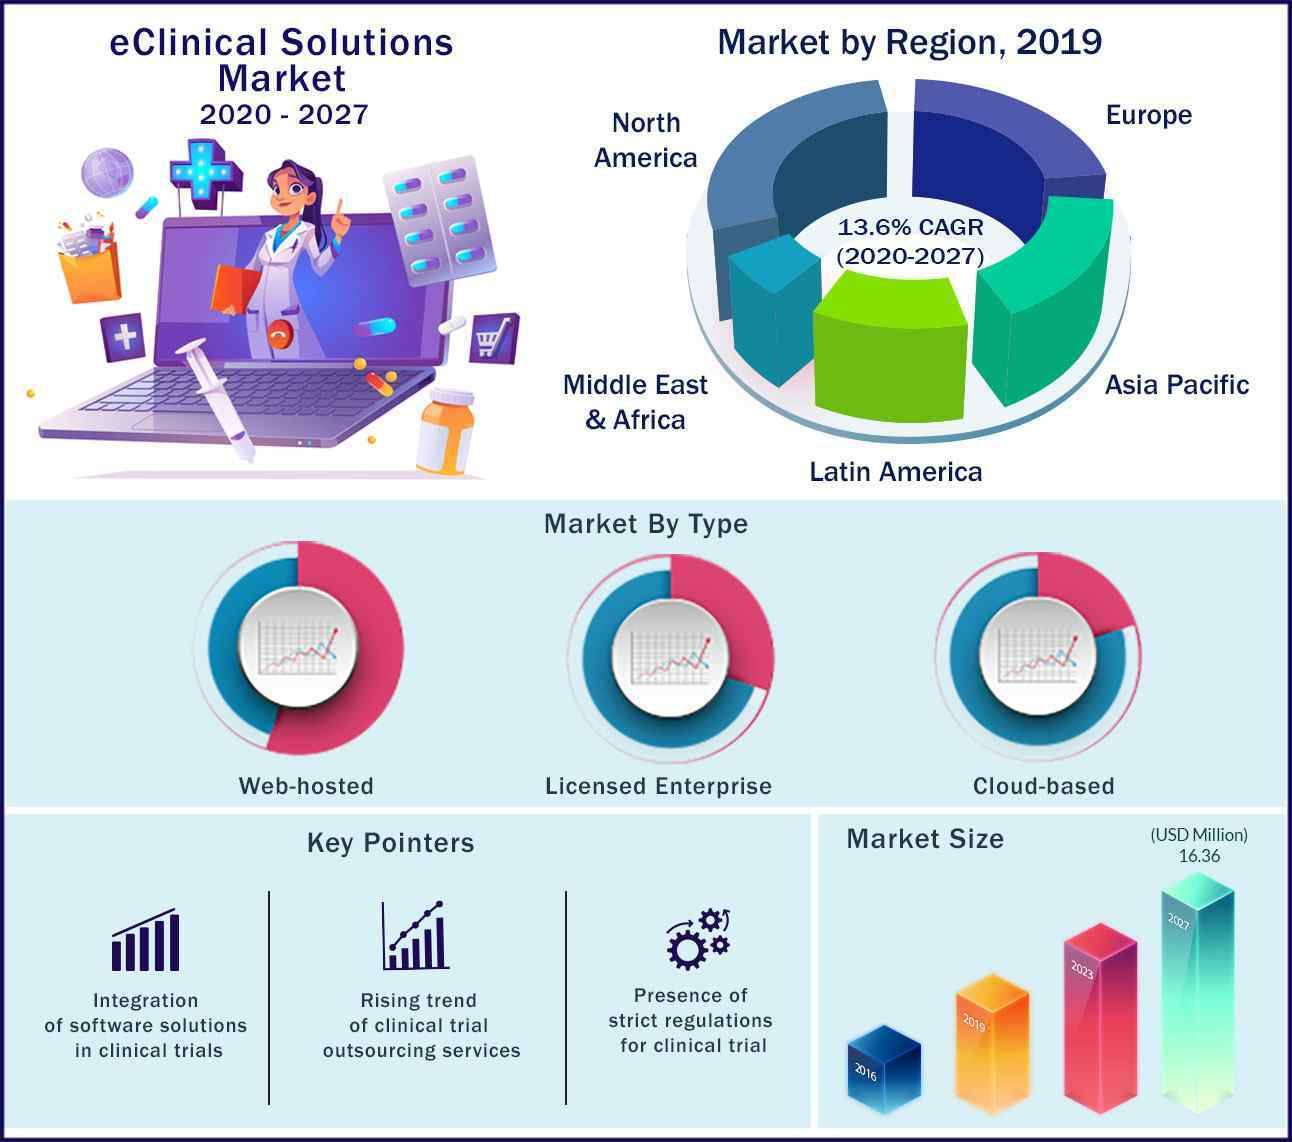 Global eClinical Solutions Market 2020 to 2027